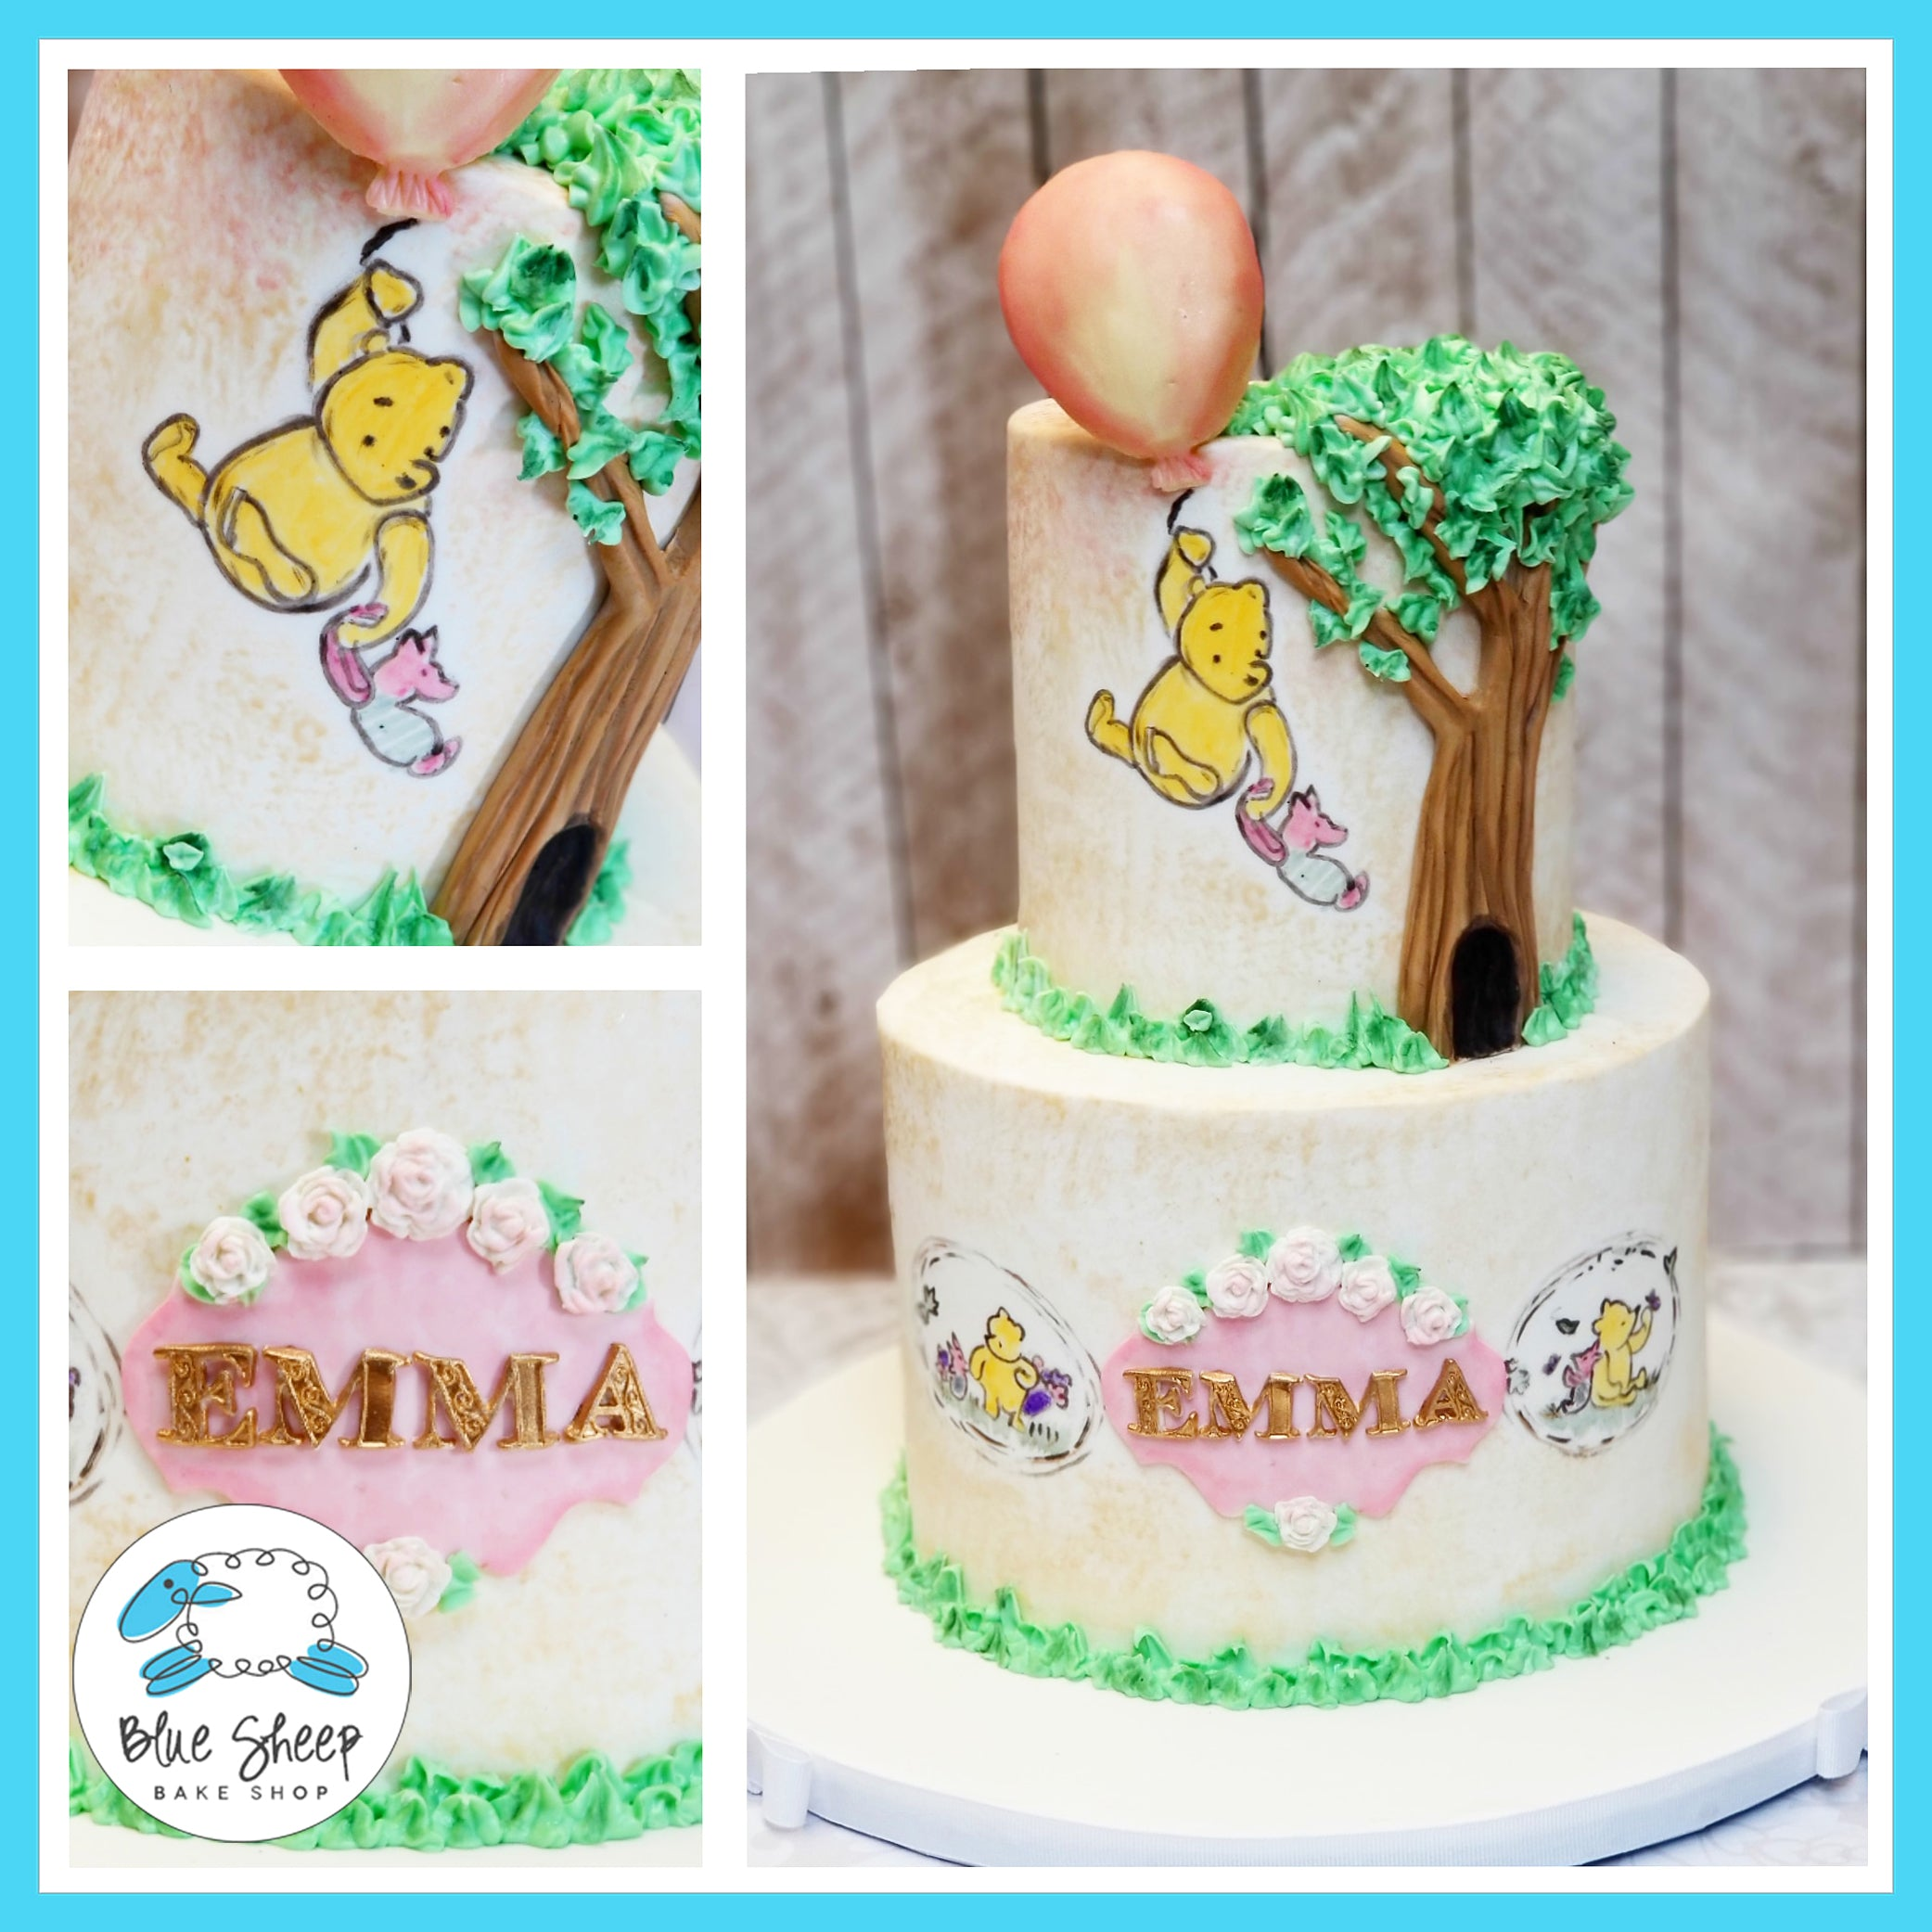 Magnificent Hand Painted Winnie The Pooh Baby Shower Cake Nj Blue Sheep Bake Funny Birthday Cards Online Alyptdamsfinfo